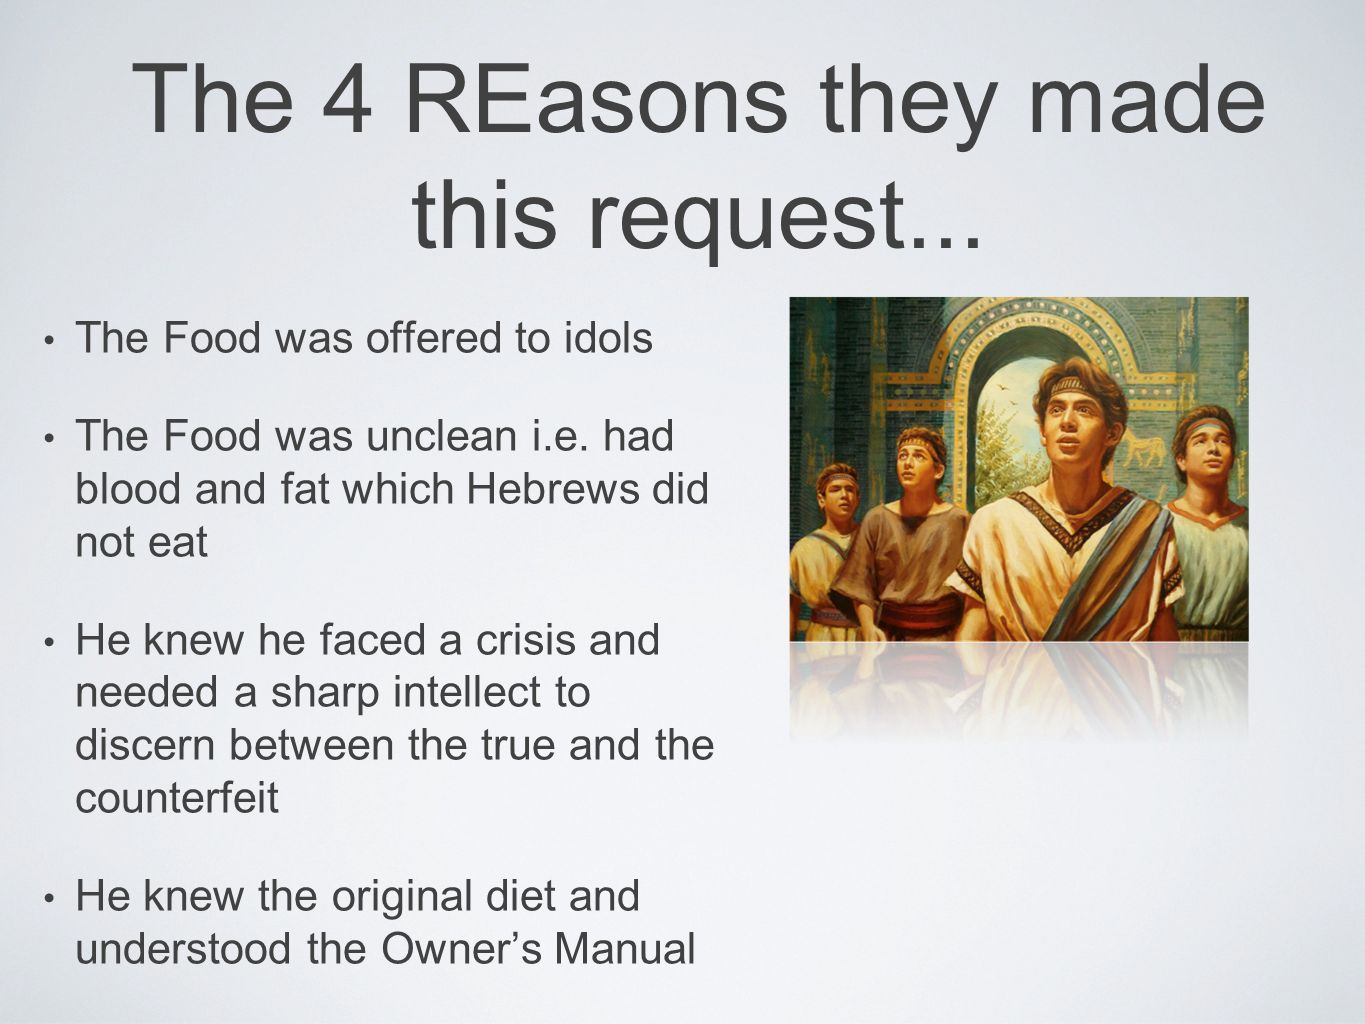 The 4 REasons they made this request... The Food was offered to idols The Food was unclean i.e. had blood and fat which Hebrews did not eat He knew he